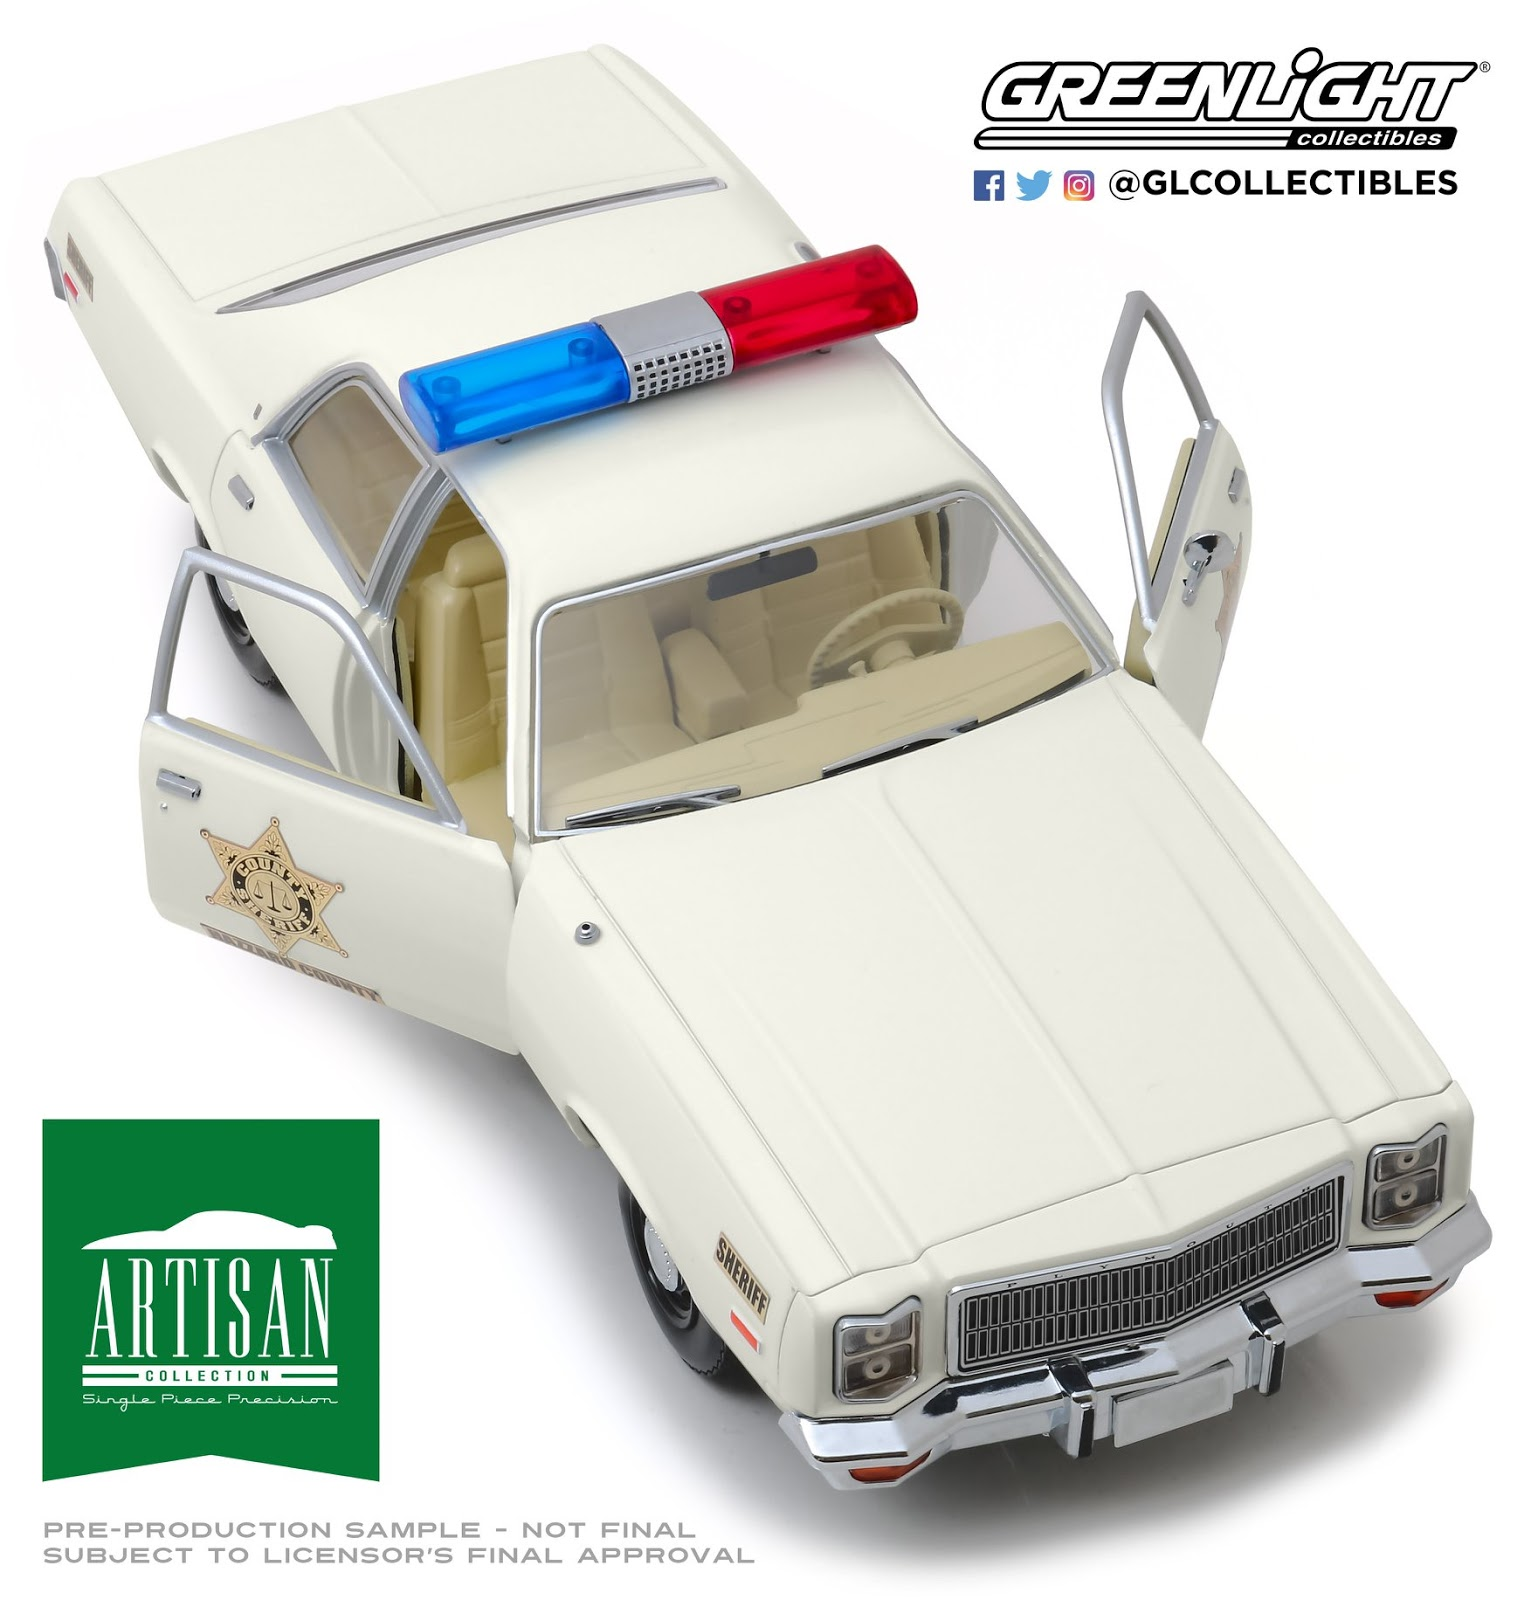 Dukes of Hazzard Collector: New Item Announcement! - Greenlight